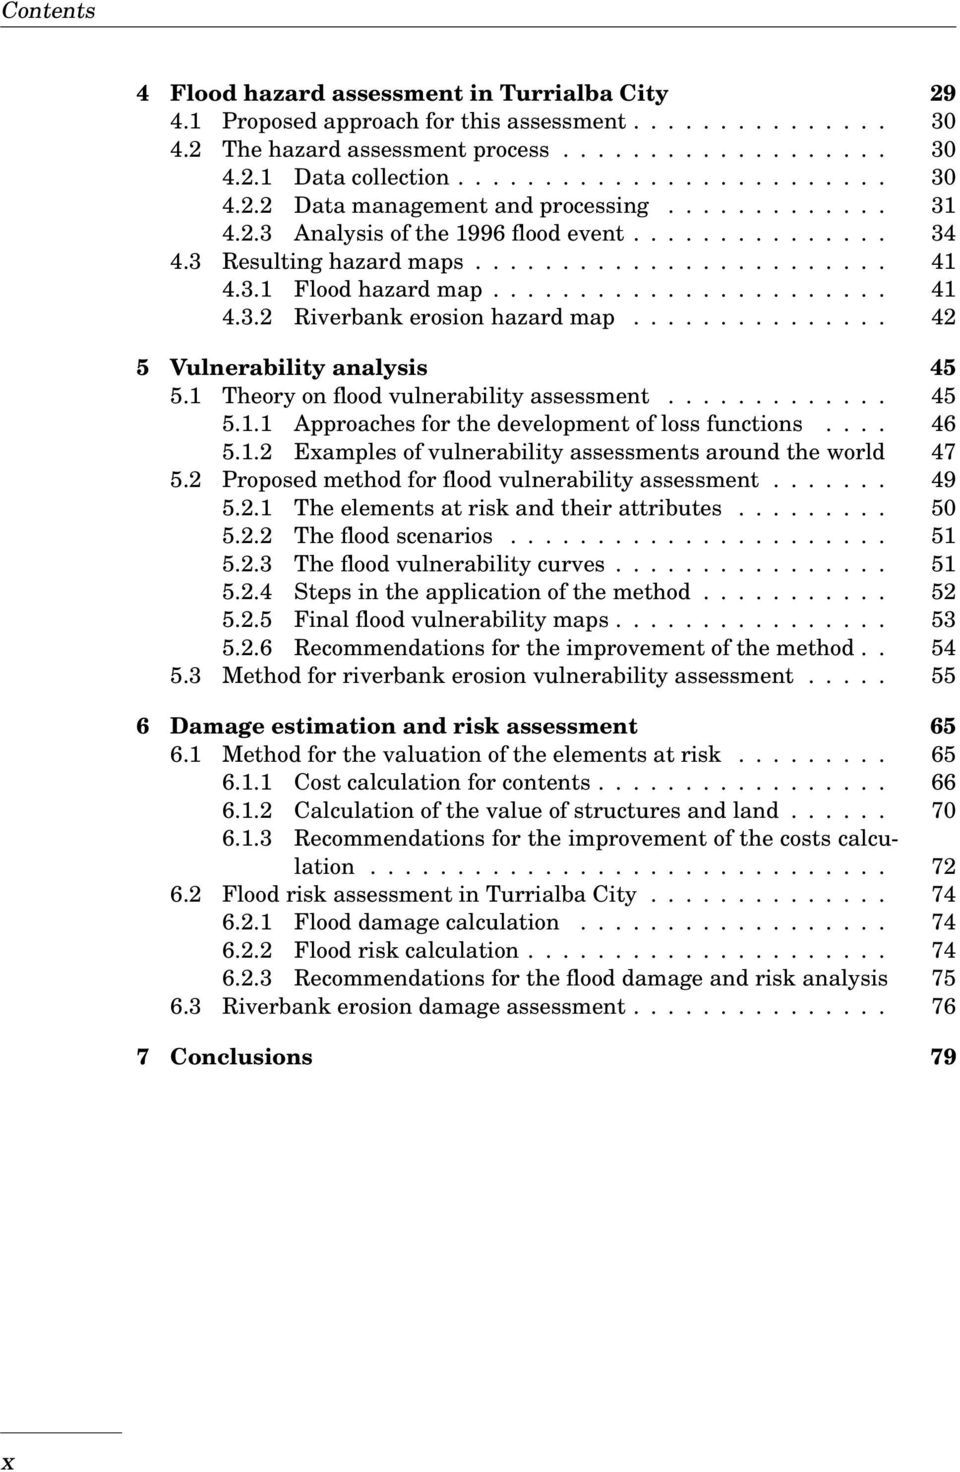 .............. 42 5 Vulnerability analysis 45 5.1 Theory on flood vulnerability assessment............. 45 5.1.1 Approaches for the development of loss functions.... 46 5.1.2 Examples of vulnerability assessments around the world 47 5.